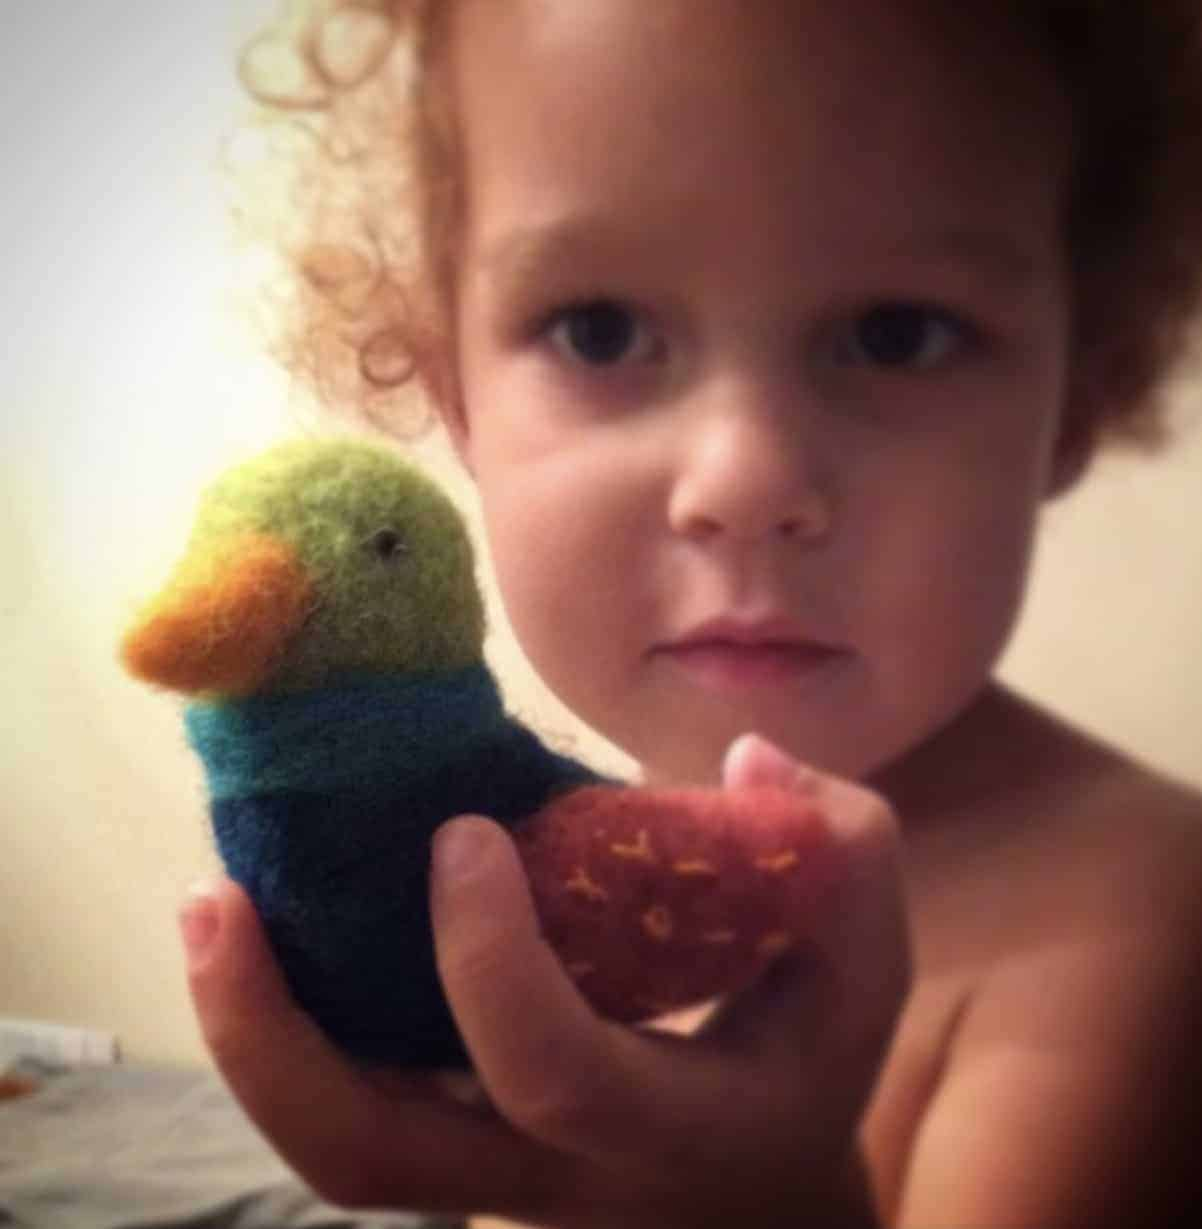 A girl holds a felted duck in green, blue and red.